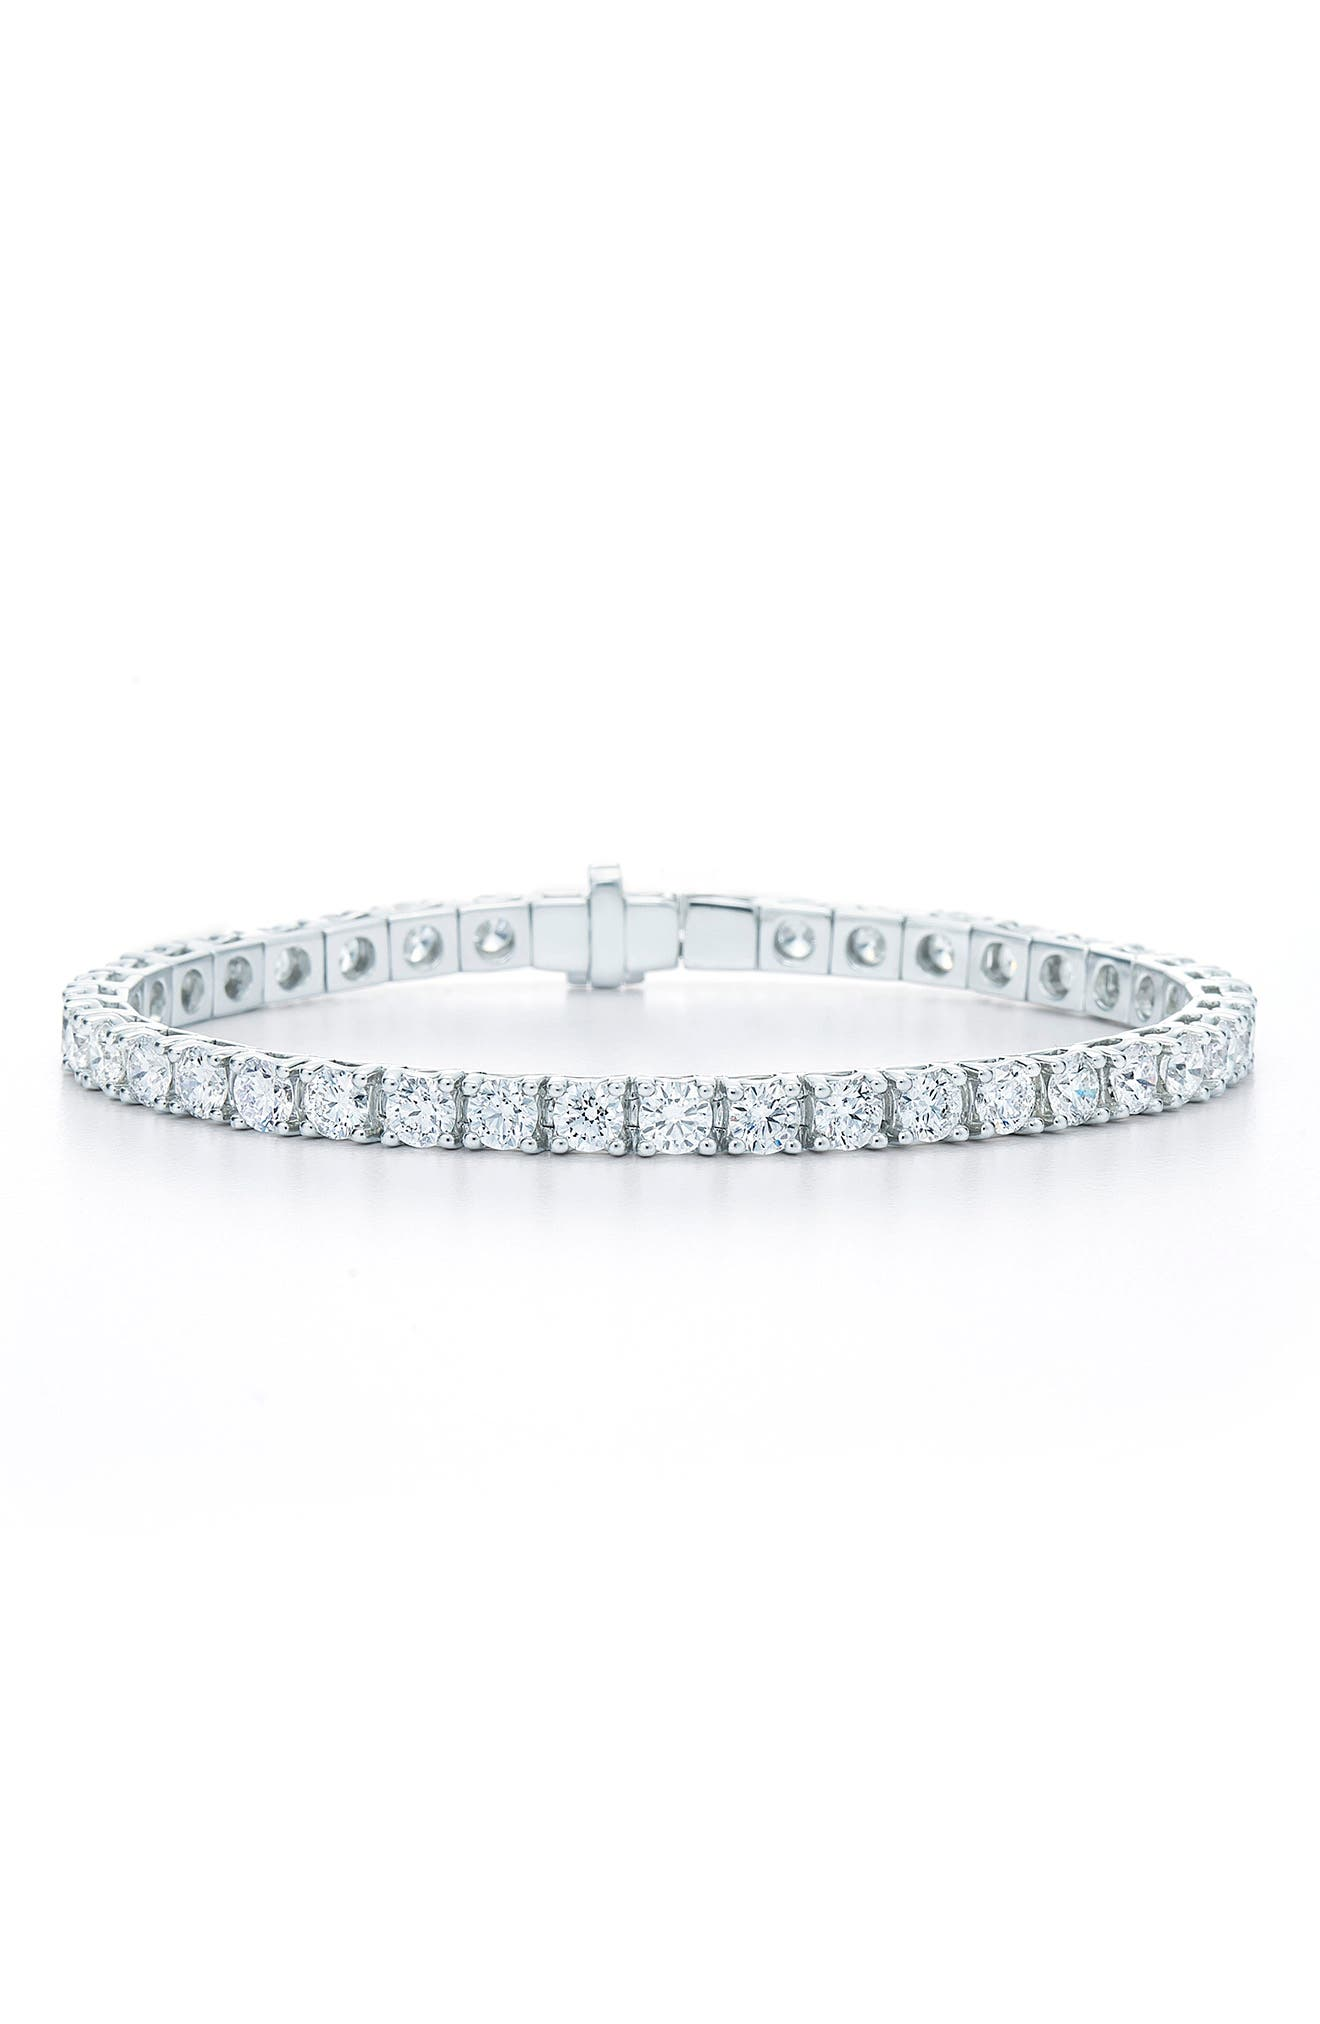 Riviera Diamond Line Bracelet,                             Main thumbnail 1, color,                             White Gold